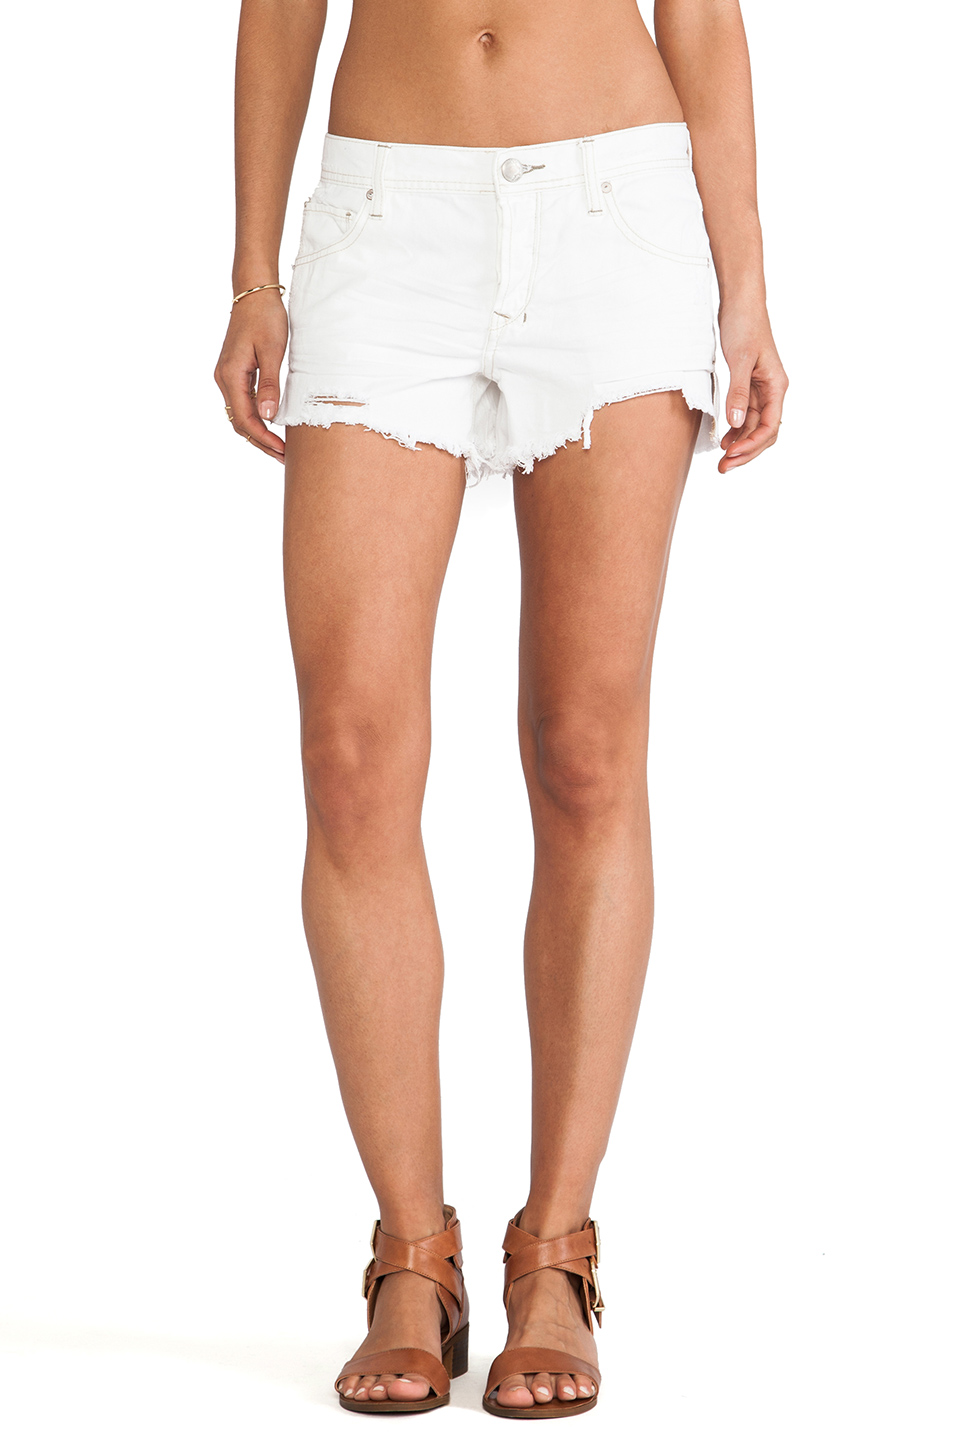 Free People Sharkbite Shorts in Polar White | REVOLVE